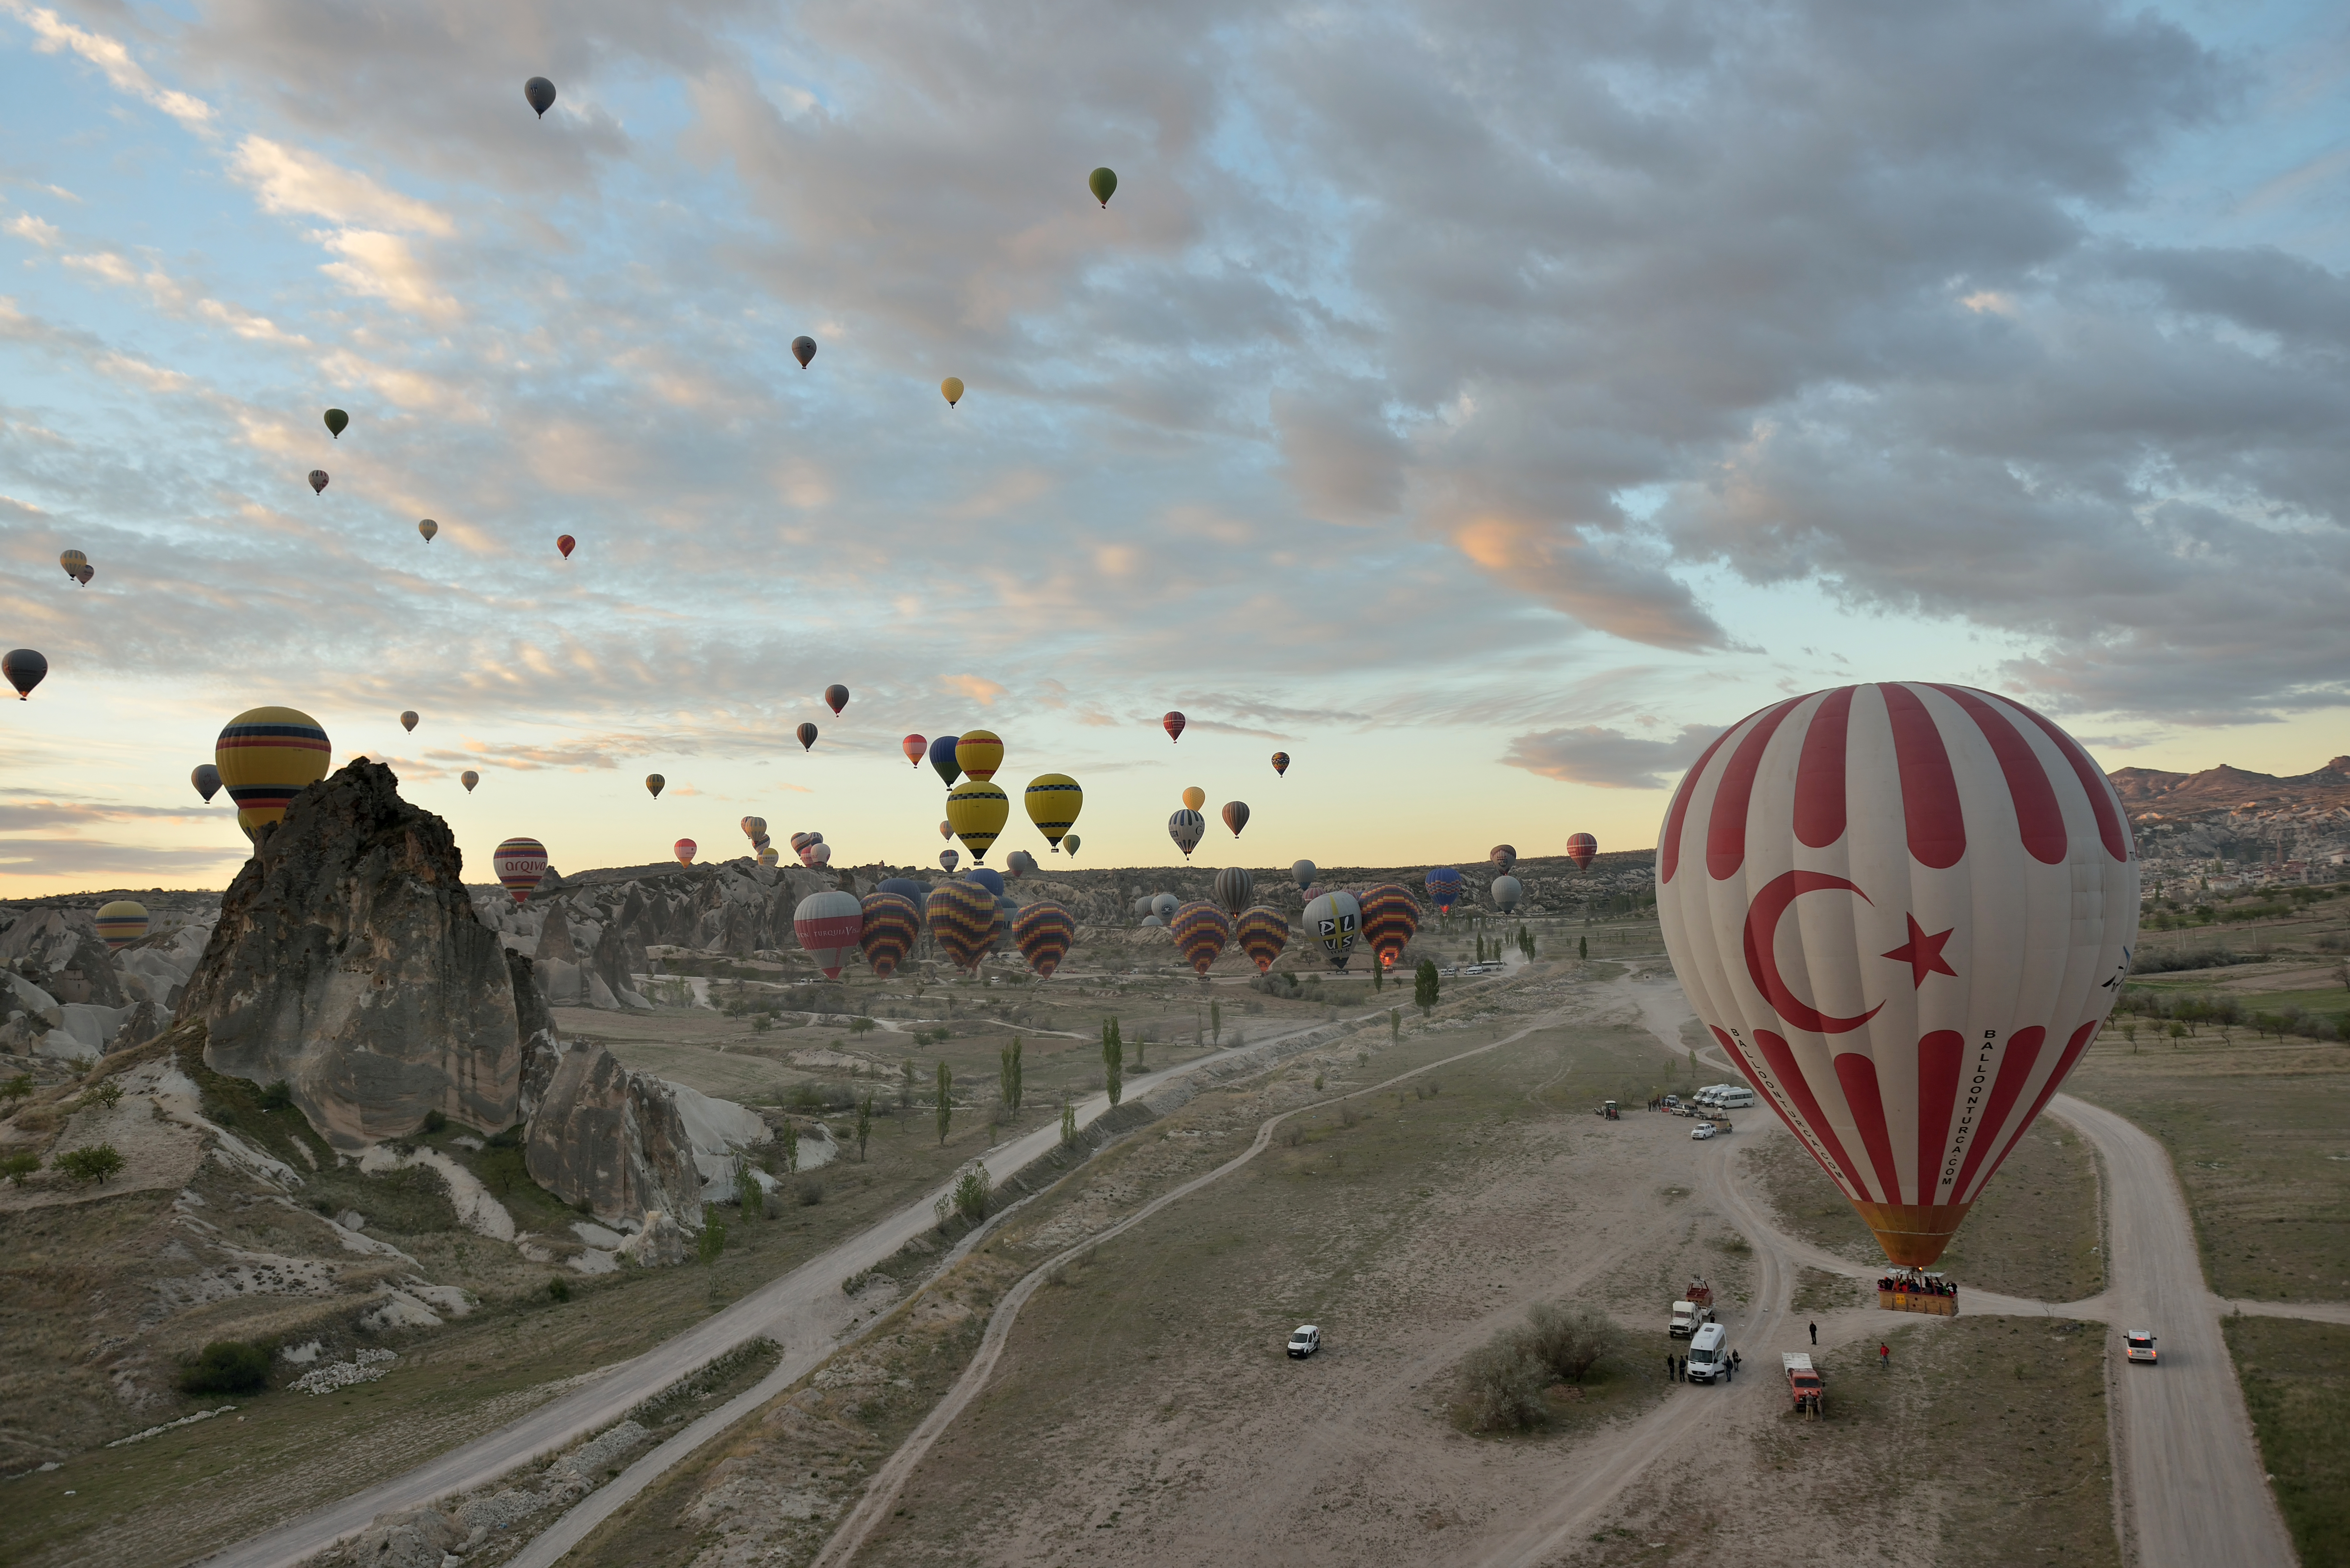 Hot air ballooning - Wikipedia